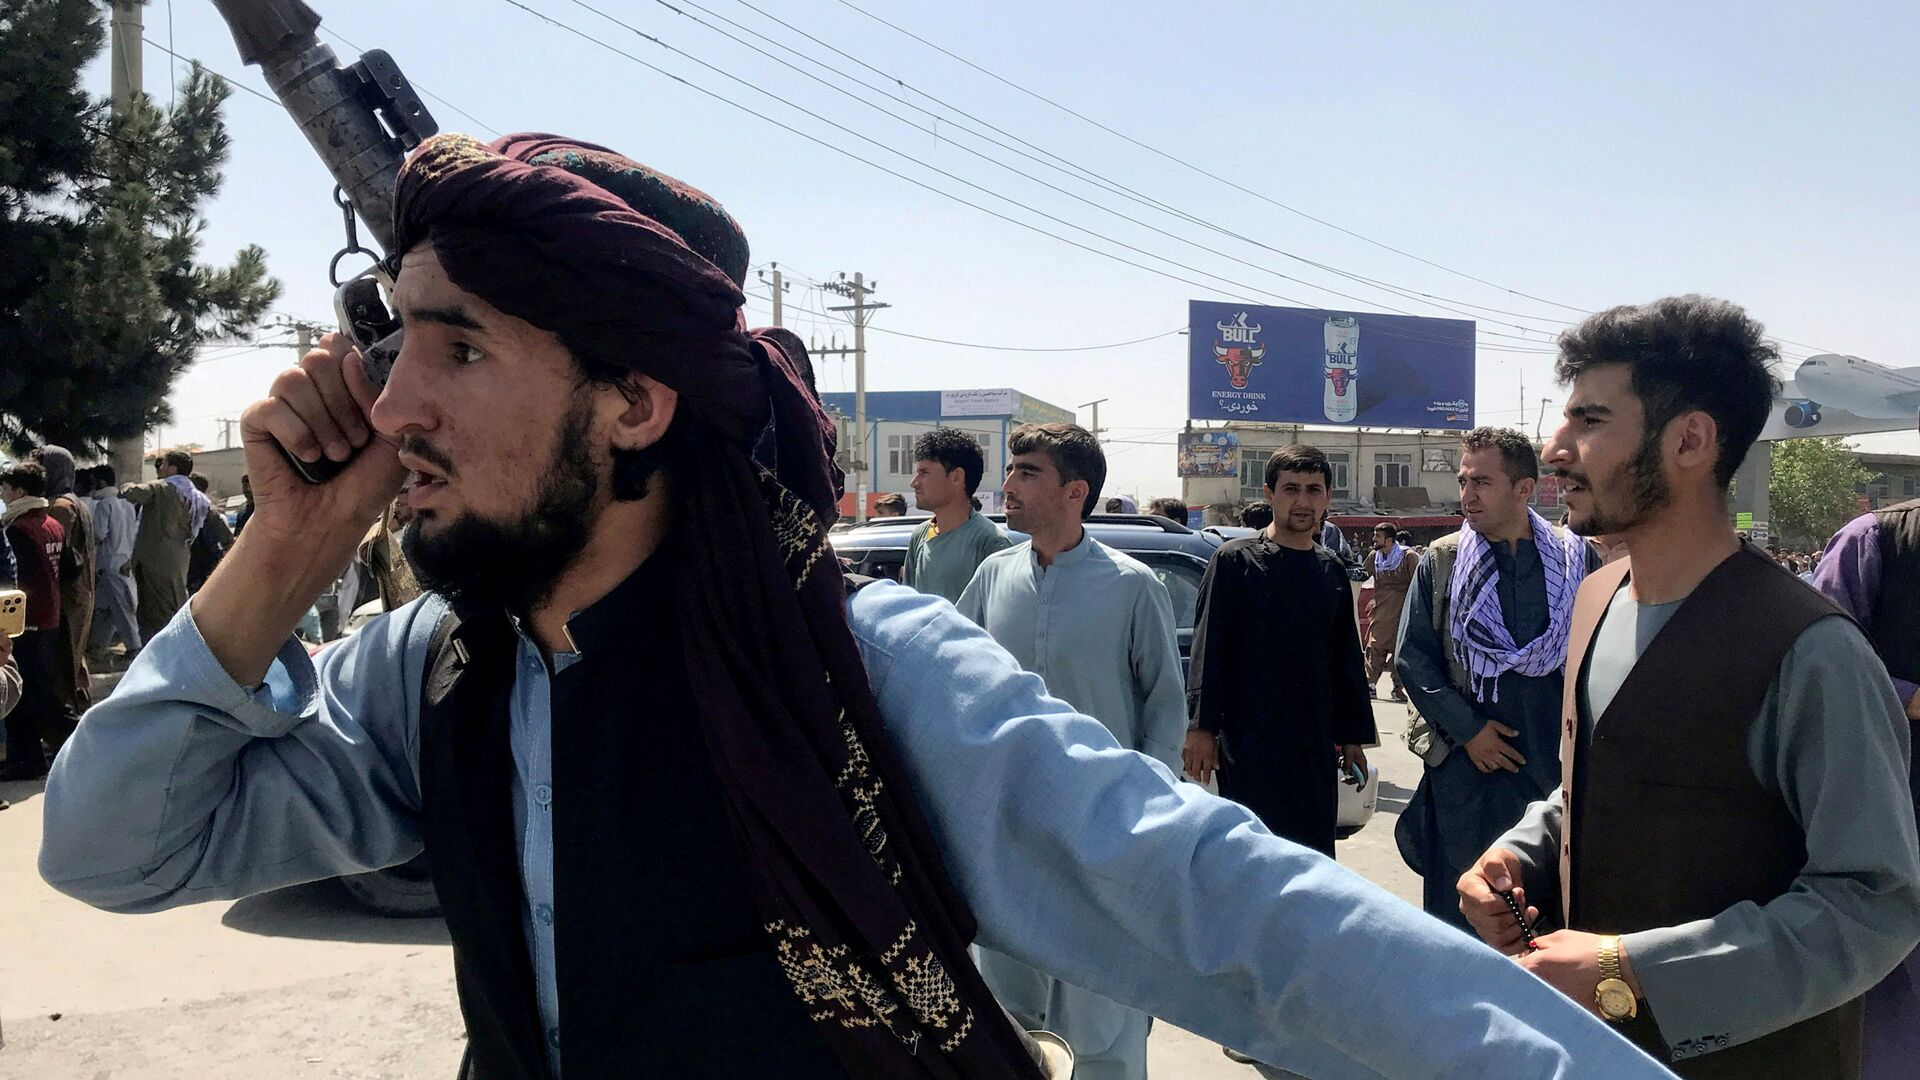 A member of Taliban forces inspects the area outside Hamid Karzai International Airport in Kabul, Afghanistan August 16, 2021 - Sputnik International, 1920, 14.09.2021